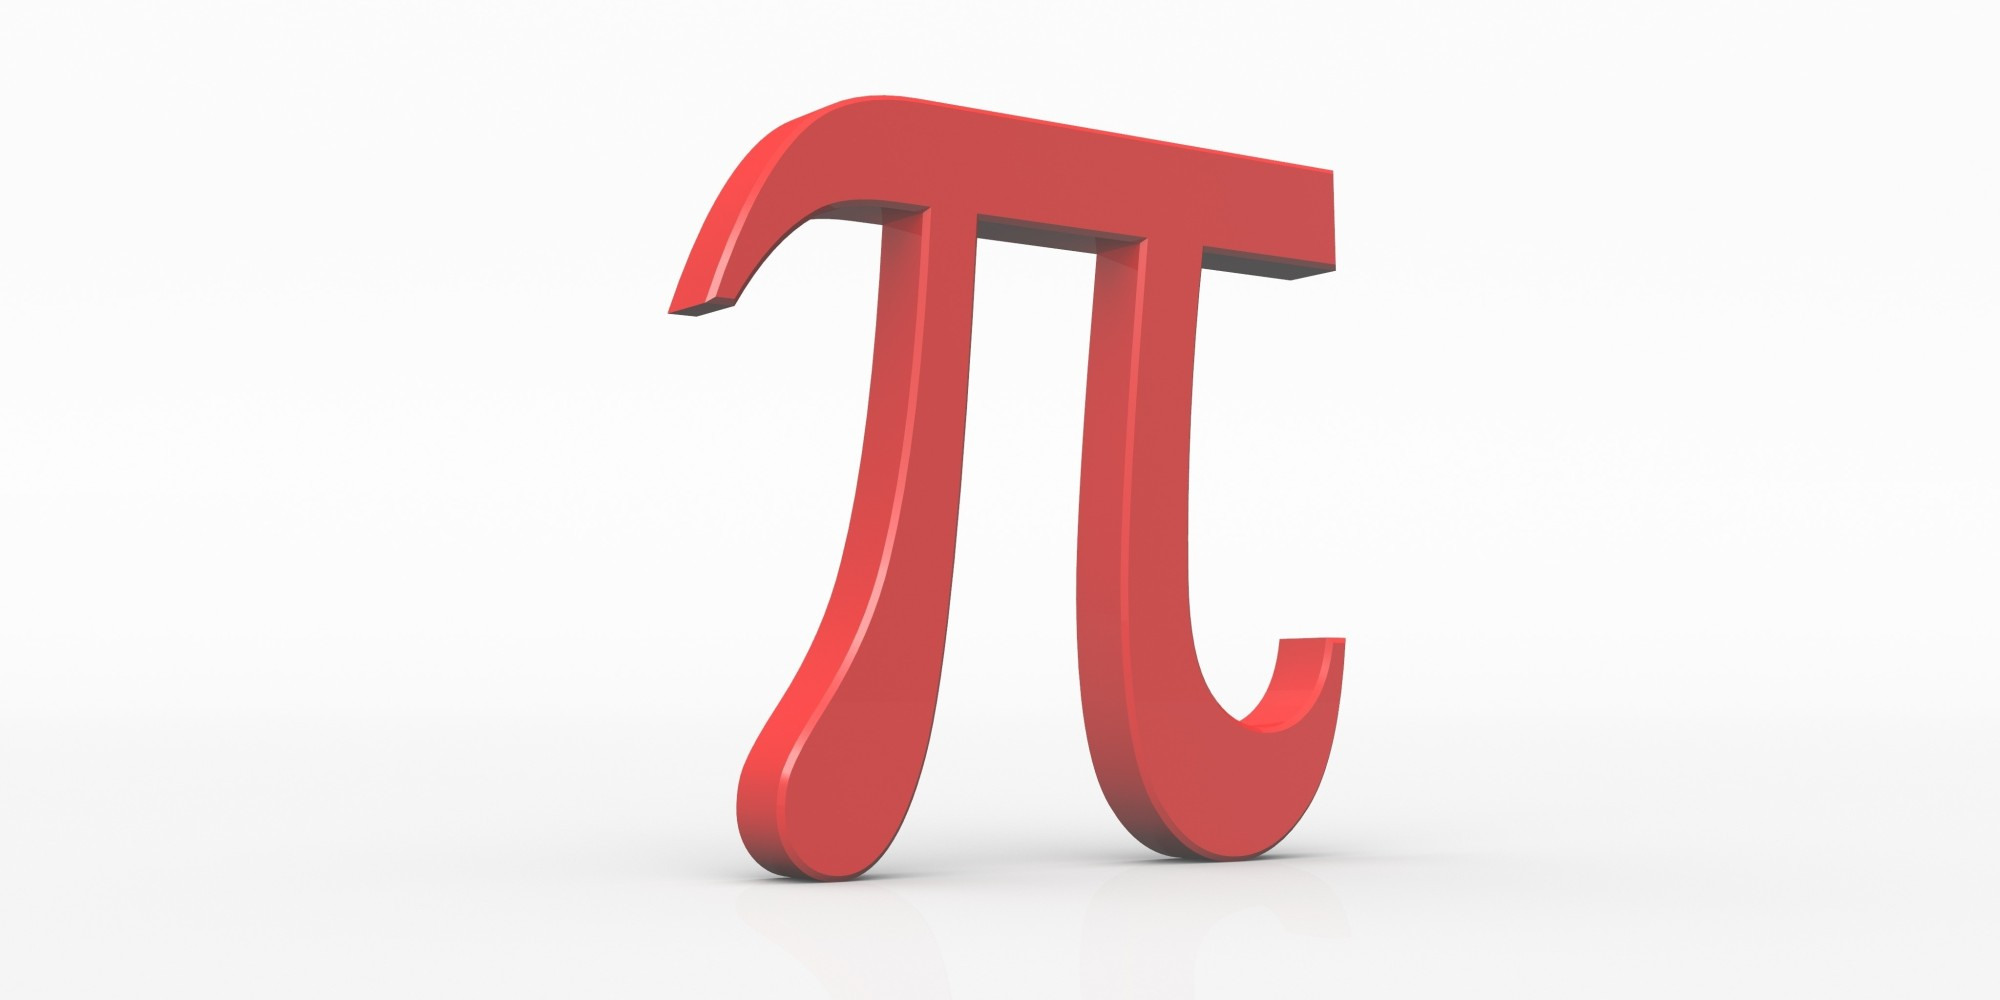 Can Pi Be Trademarked? | HuffPost